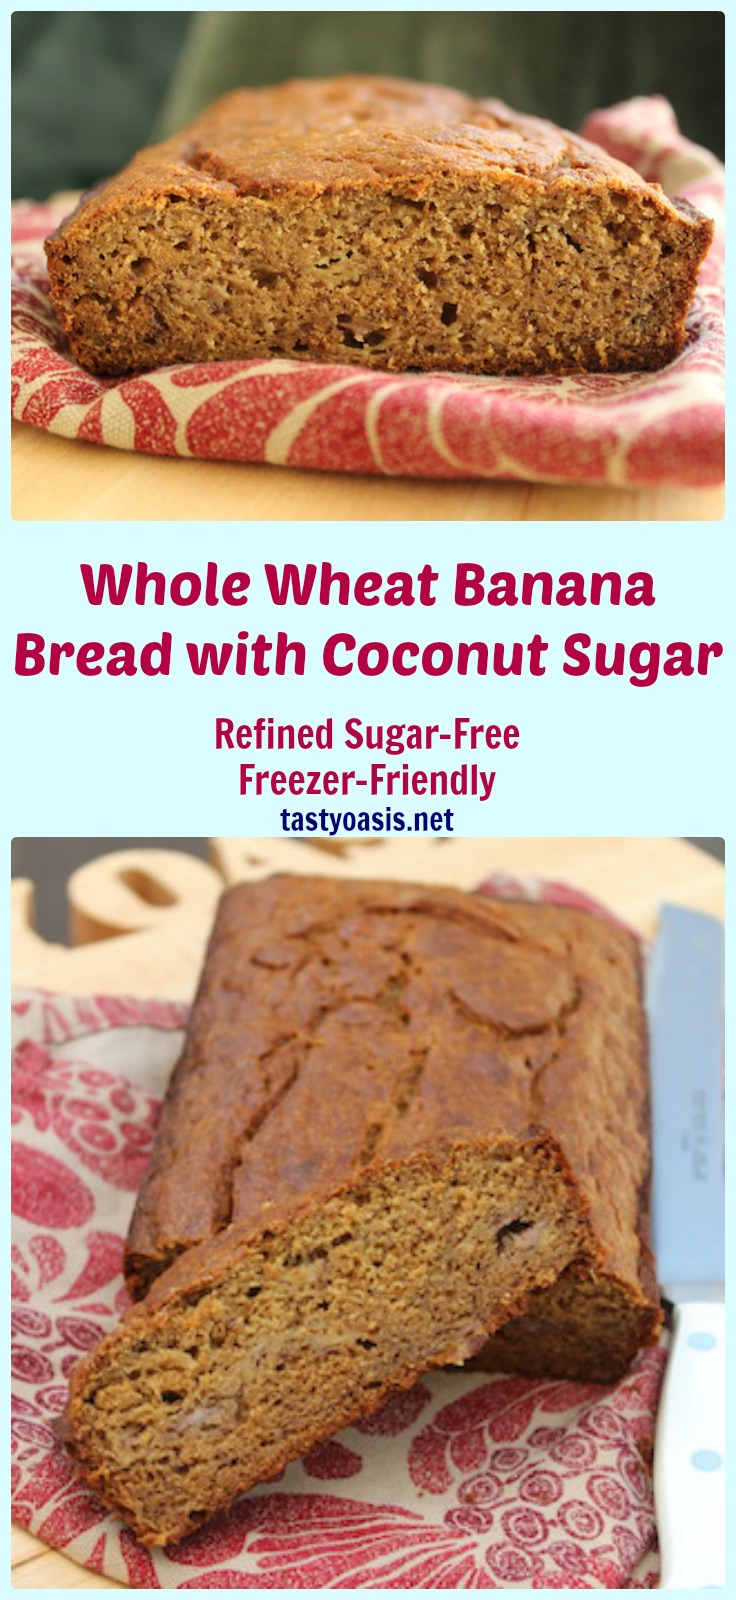 Whole Wheat Banana Bread with Coconut Sugar is a healthy treat, quick to put together, easy to make, refined sugar-free and freezer-friendly. It's as great for lunch boxes as it is for tea time.| www.tastyoasis.net